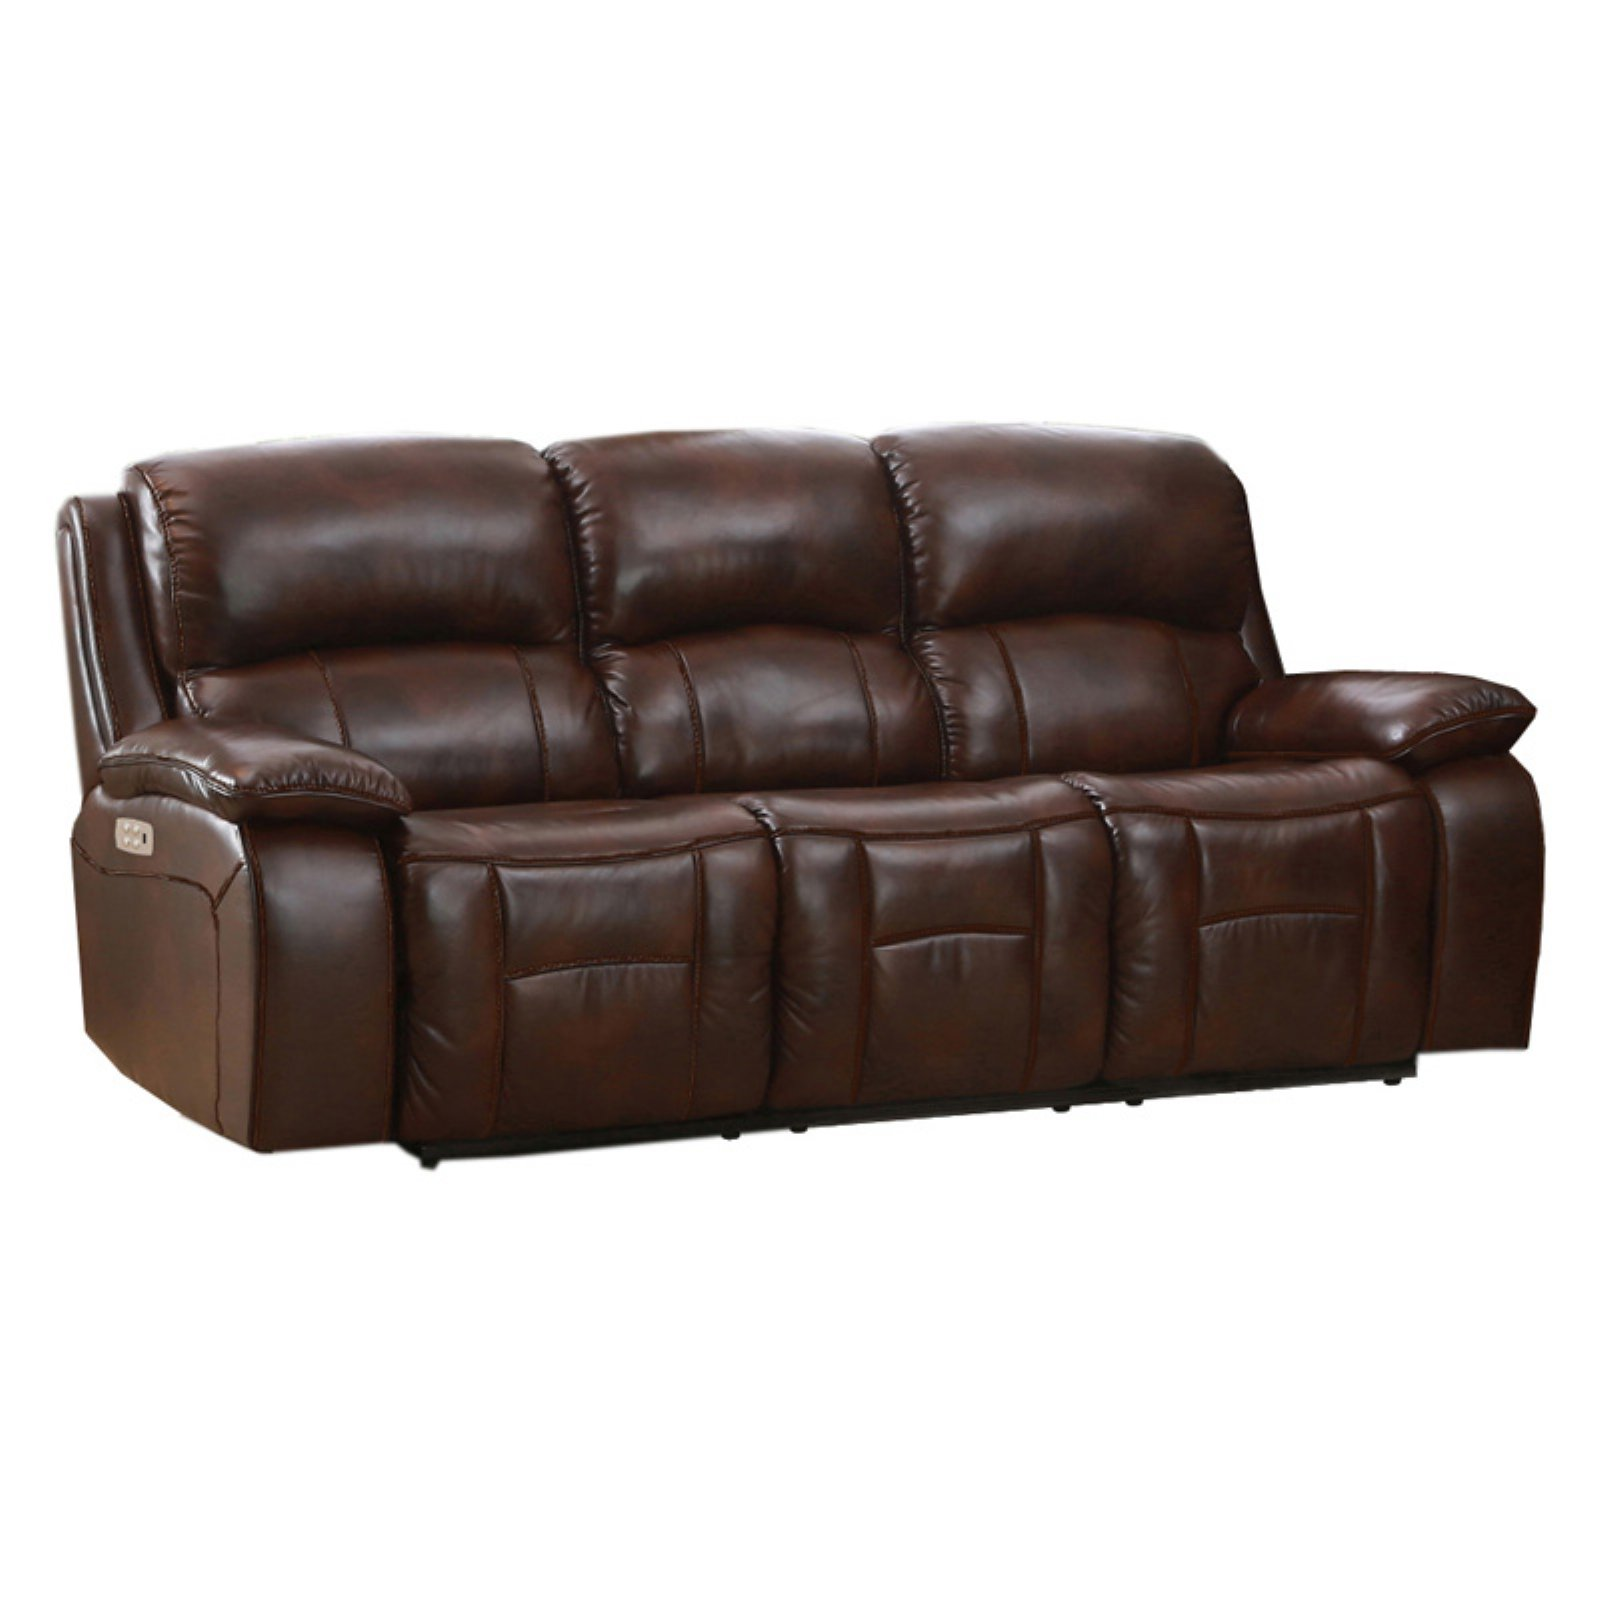 Amax Leather Westminster II Top Grain Leather Power Reclining Sofa